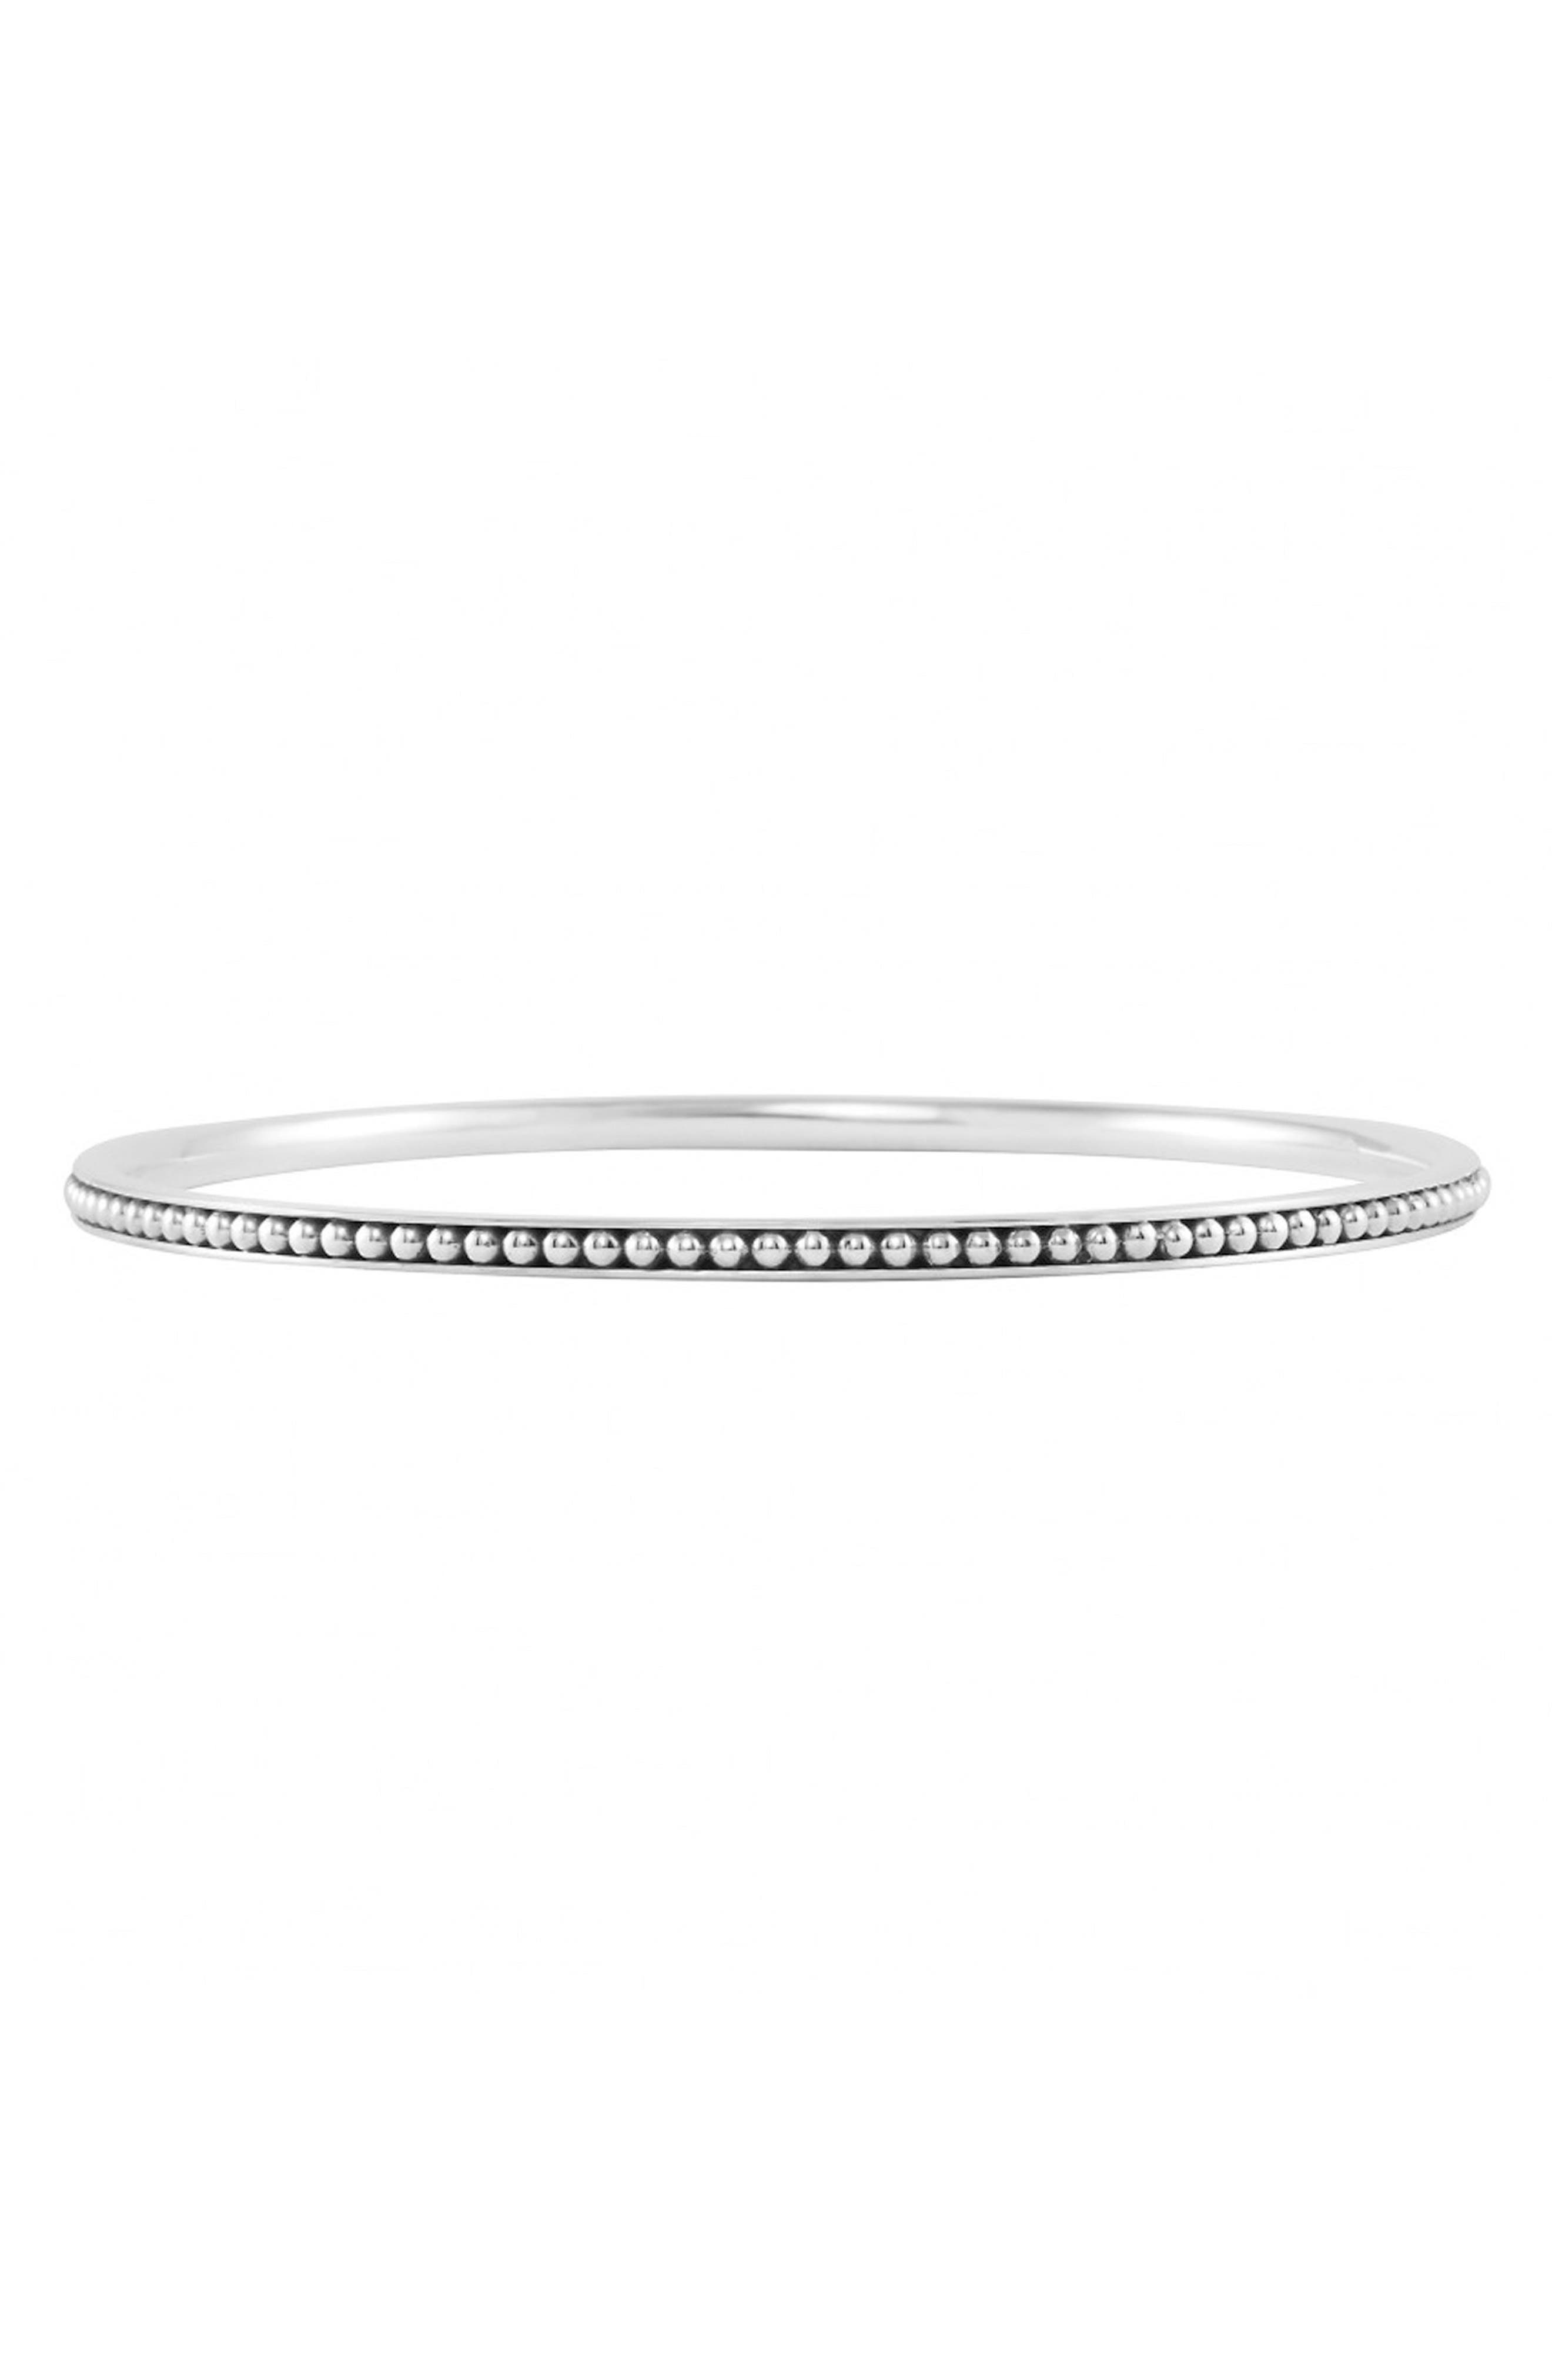 Caviar<sup>™</sup> Bangle,                         Main,                         color, Sterling Silver